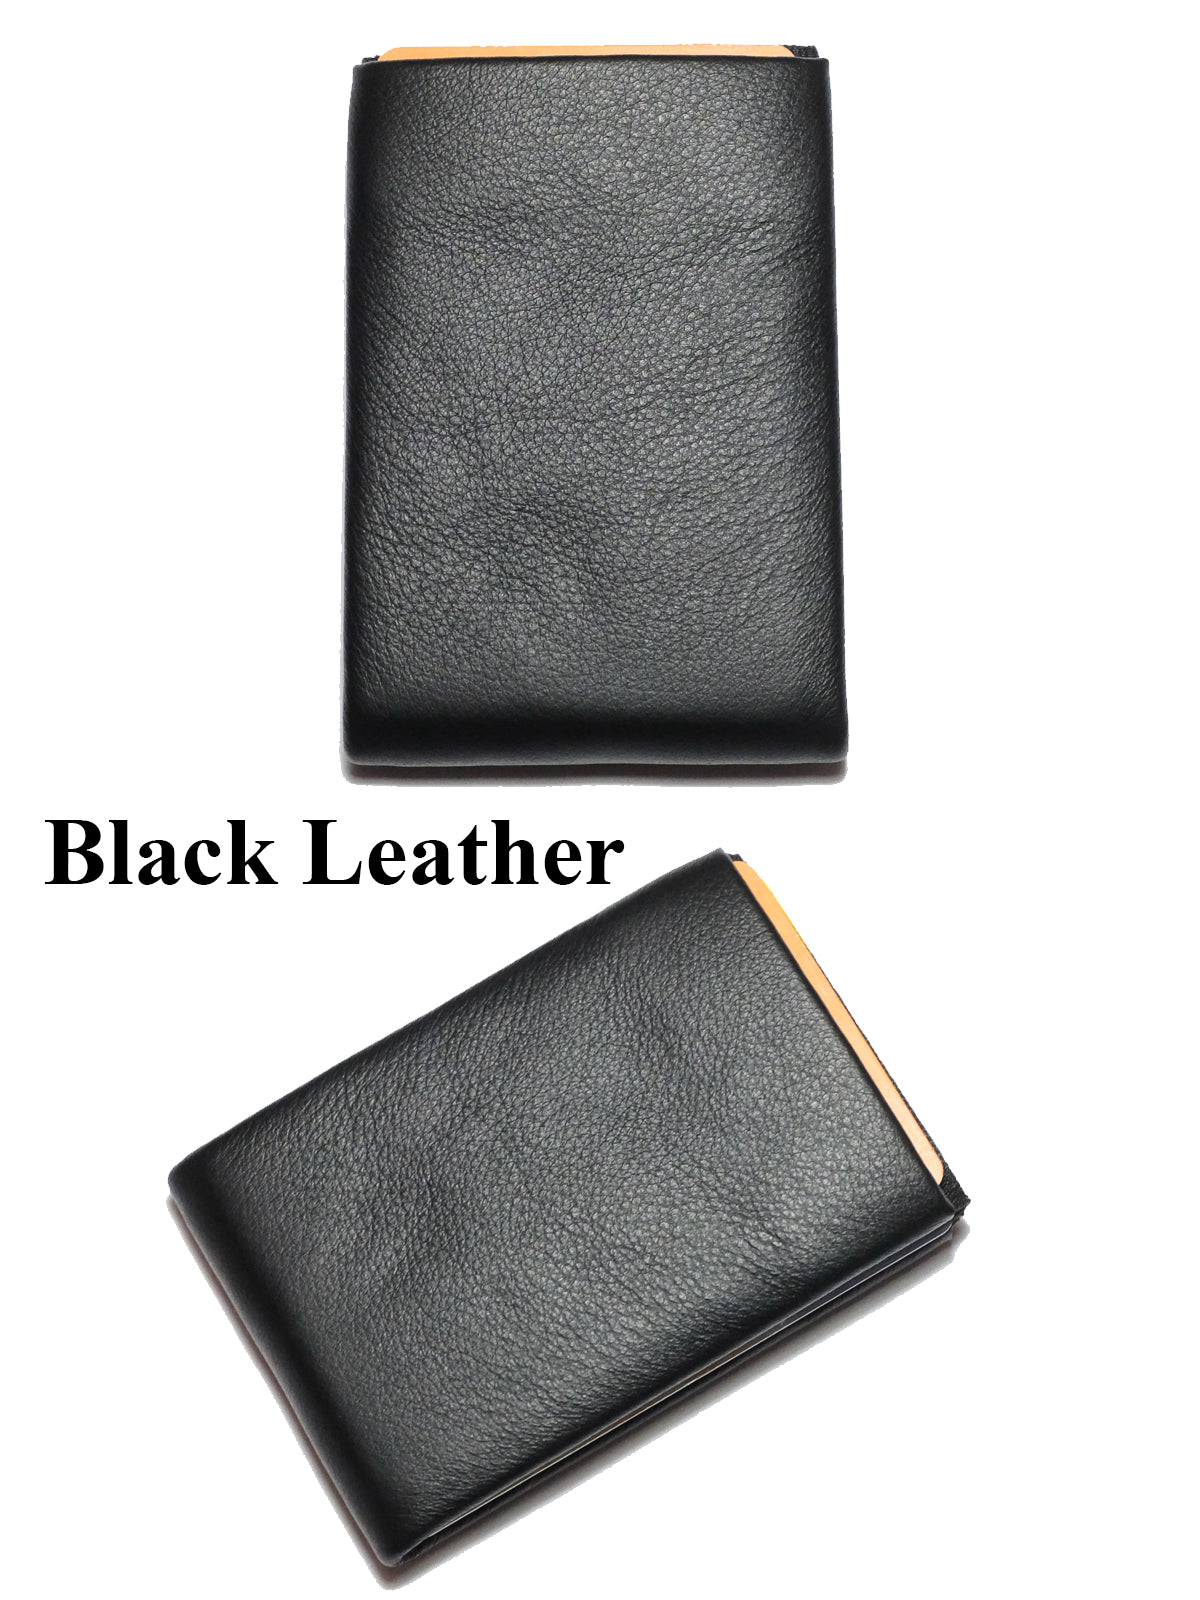 Minimalist Wallets, RFID Blocking Wallets New Generation Nero Wallet -  FULL RFID protection - NERO Minimalist Wallet